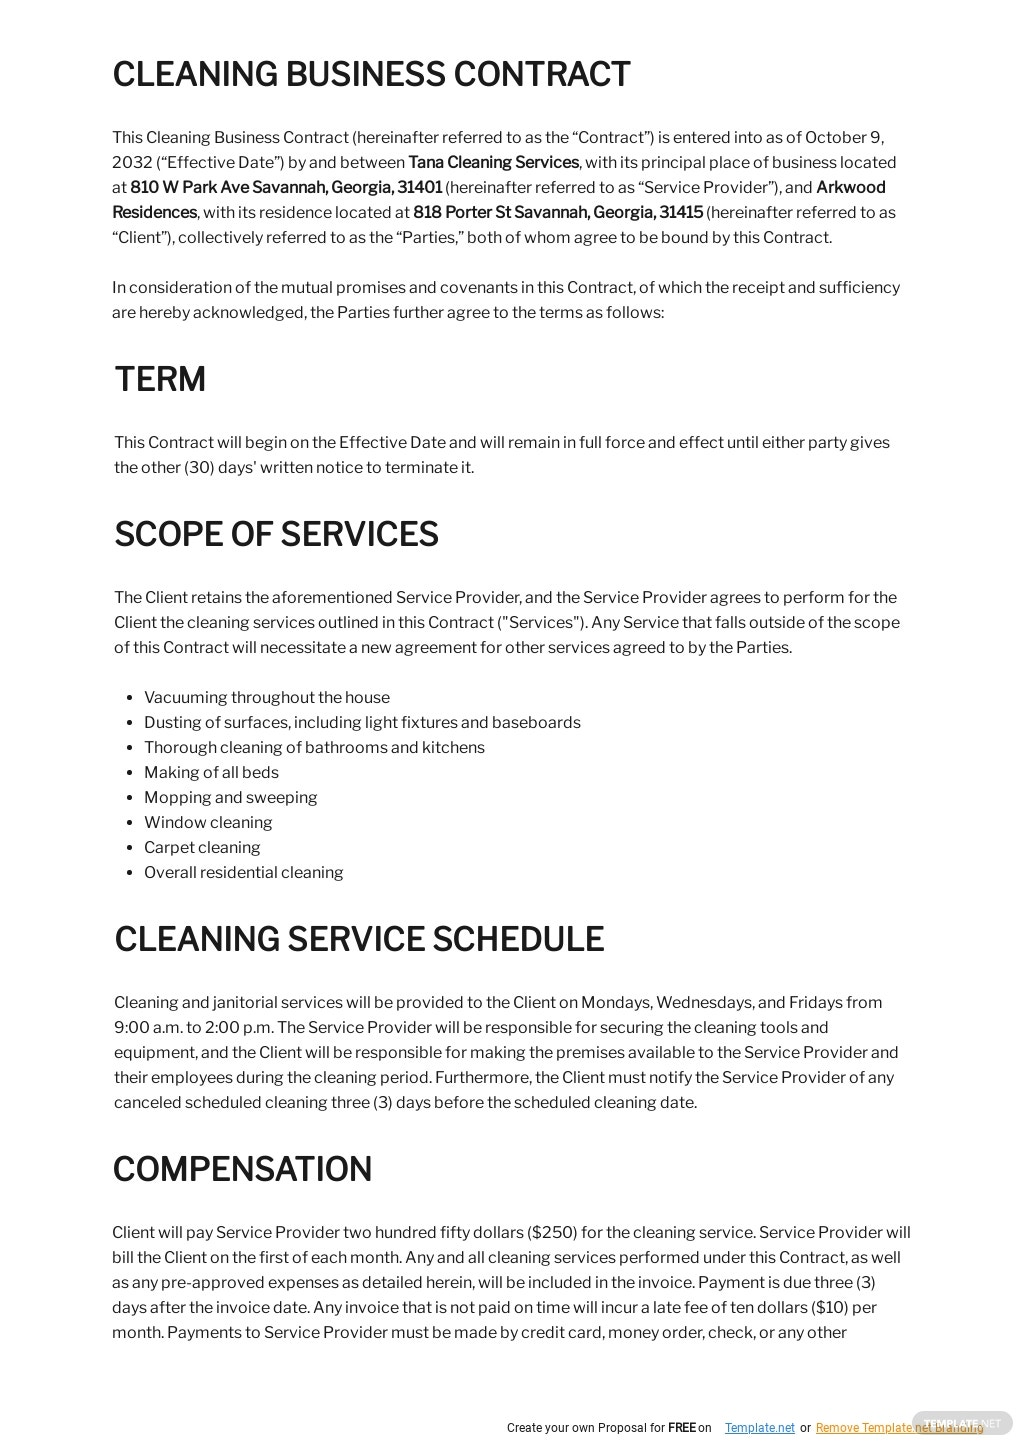 Cleaning Business Contract Template 1.jpe